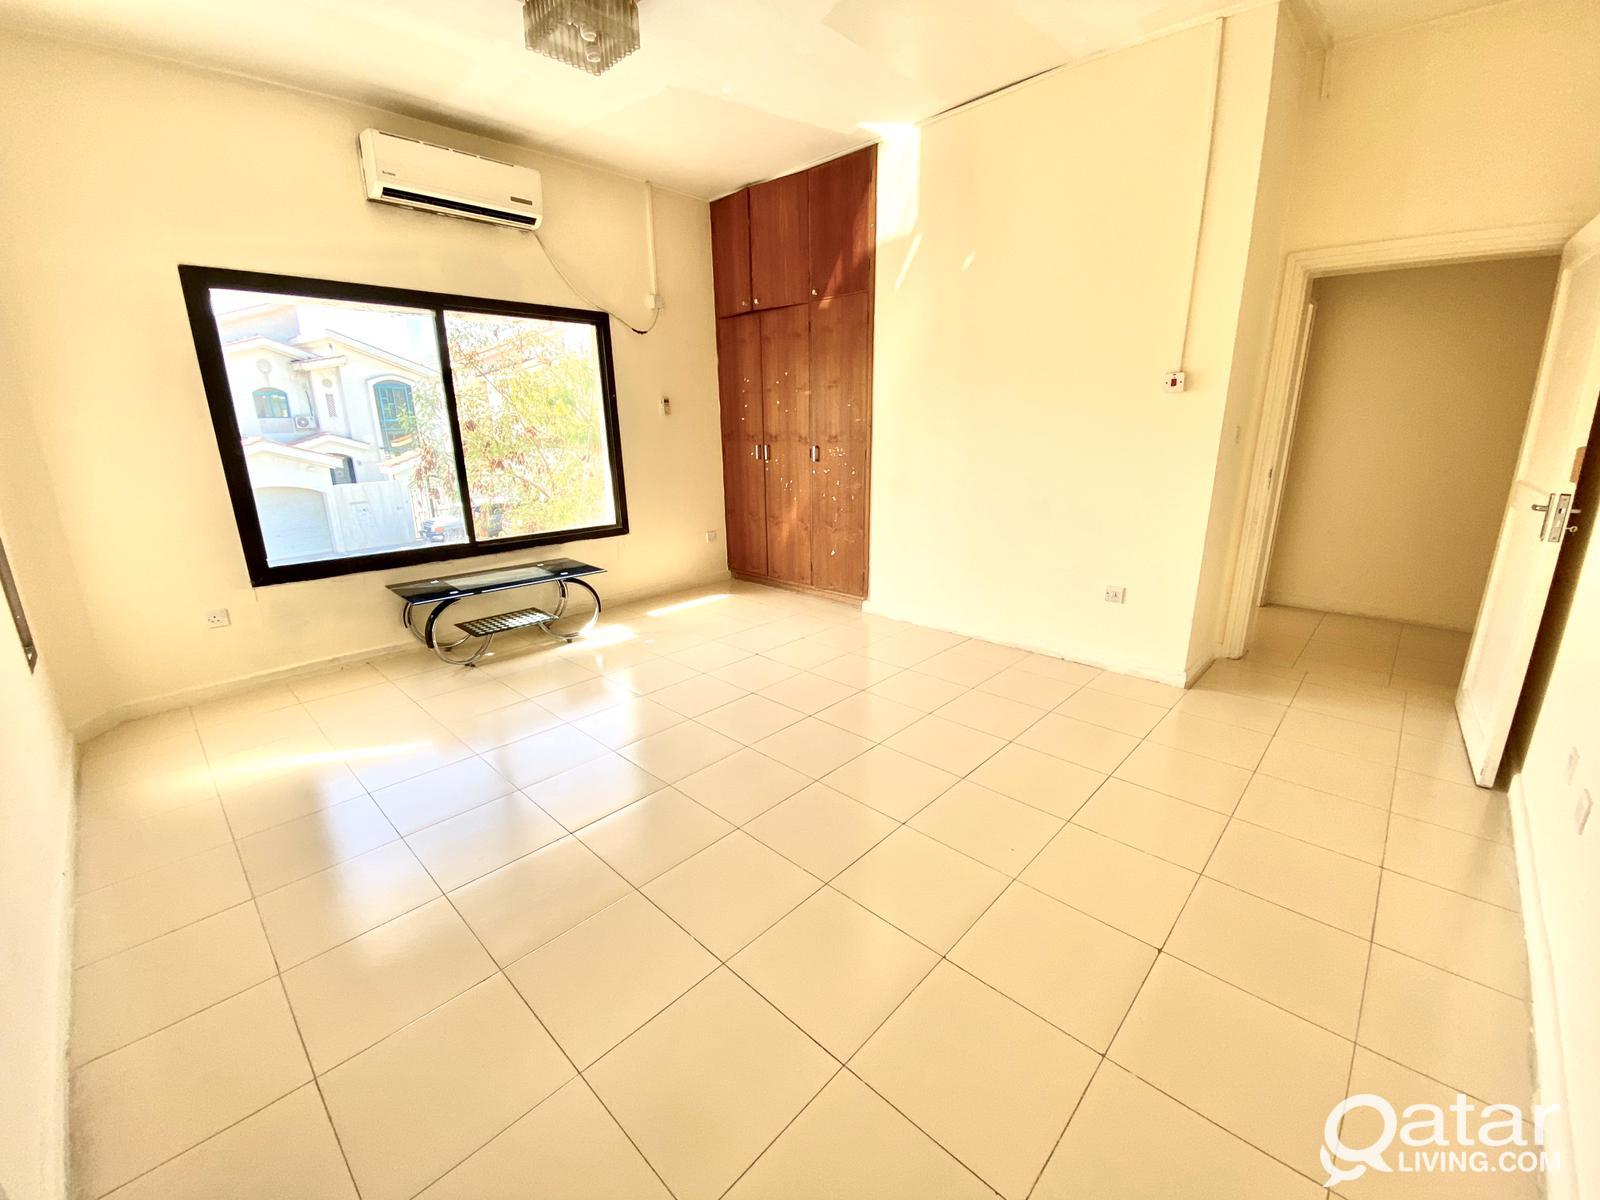 Spacious 1 BHK With Concrete Walls (No Partition)